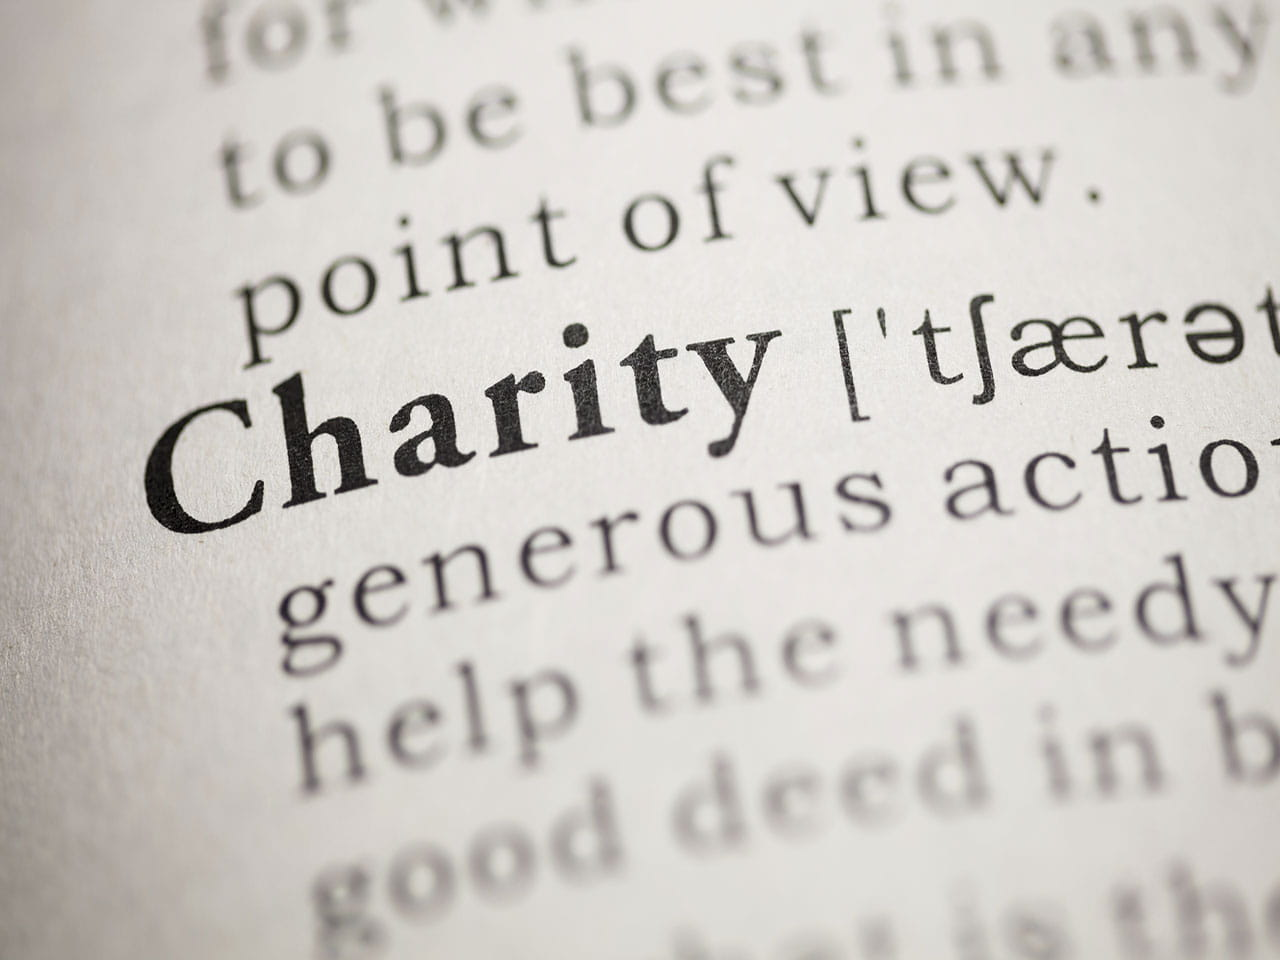 Dictionary definition of charity